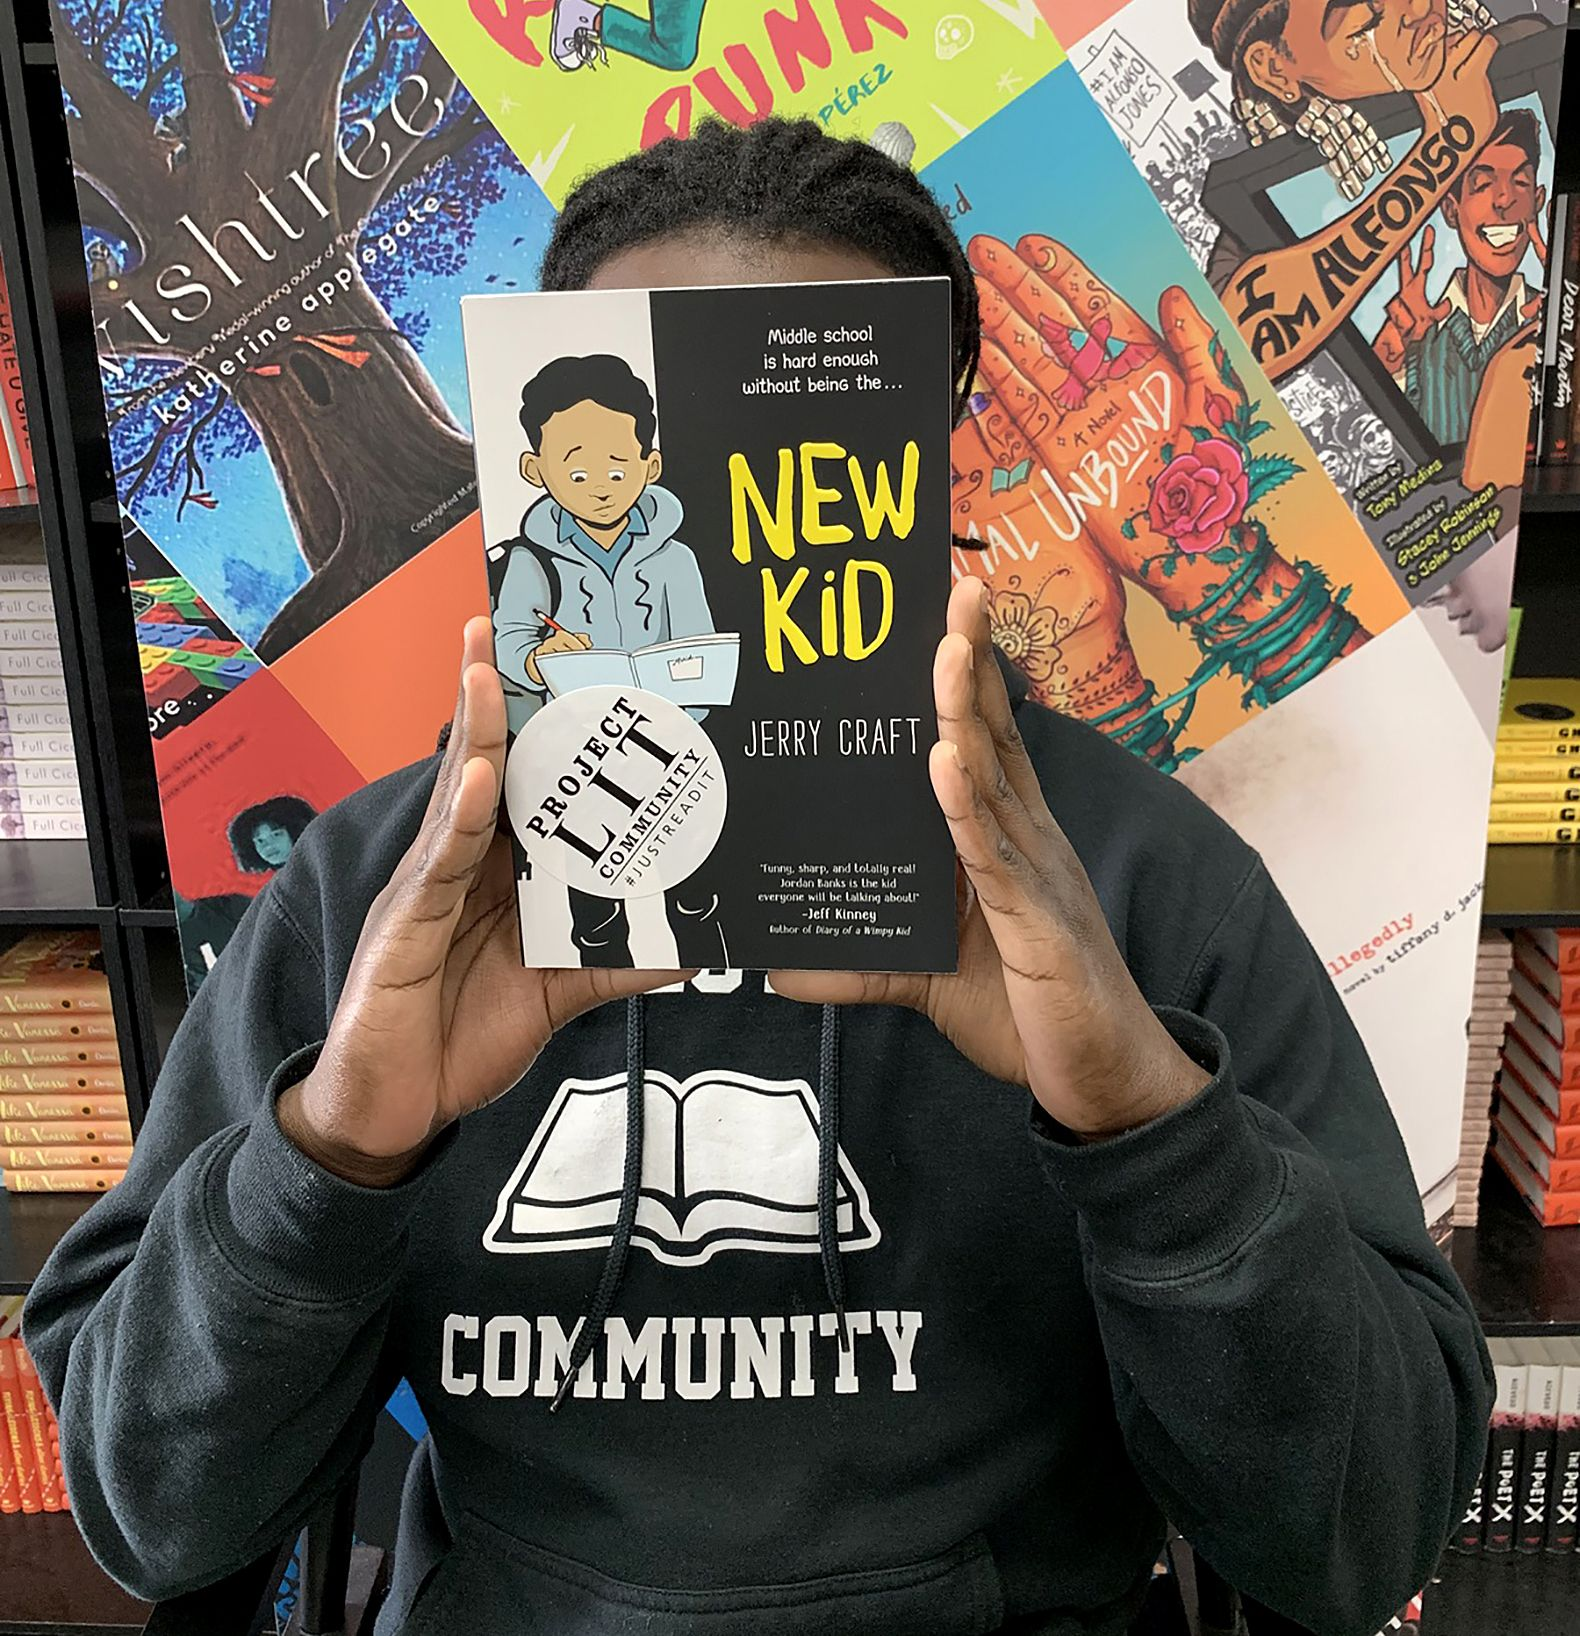 A student holds up a book from the school library